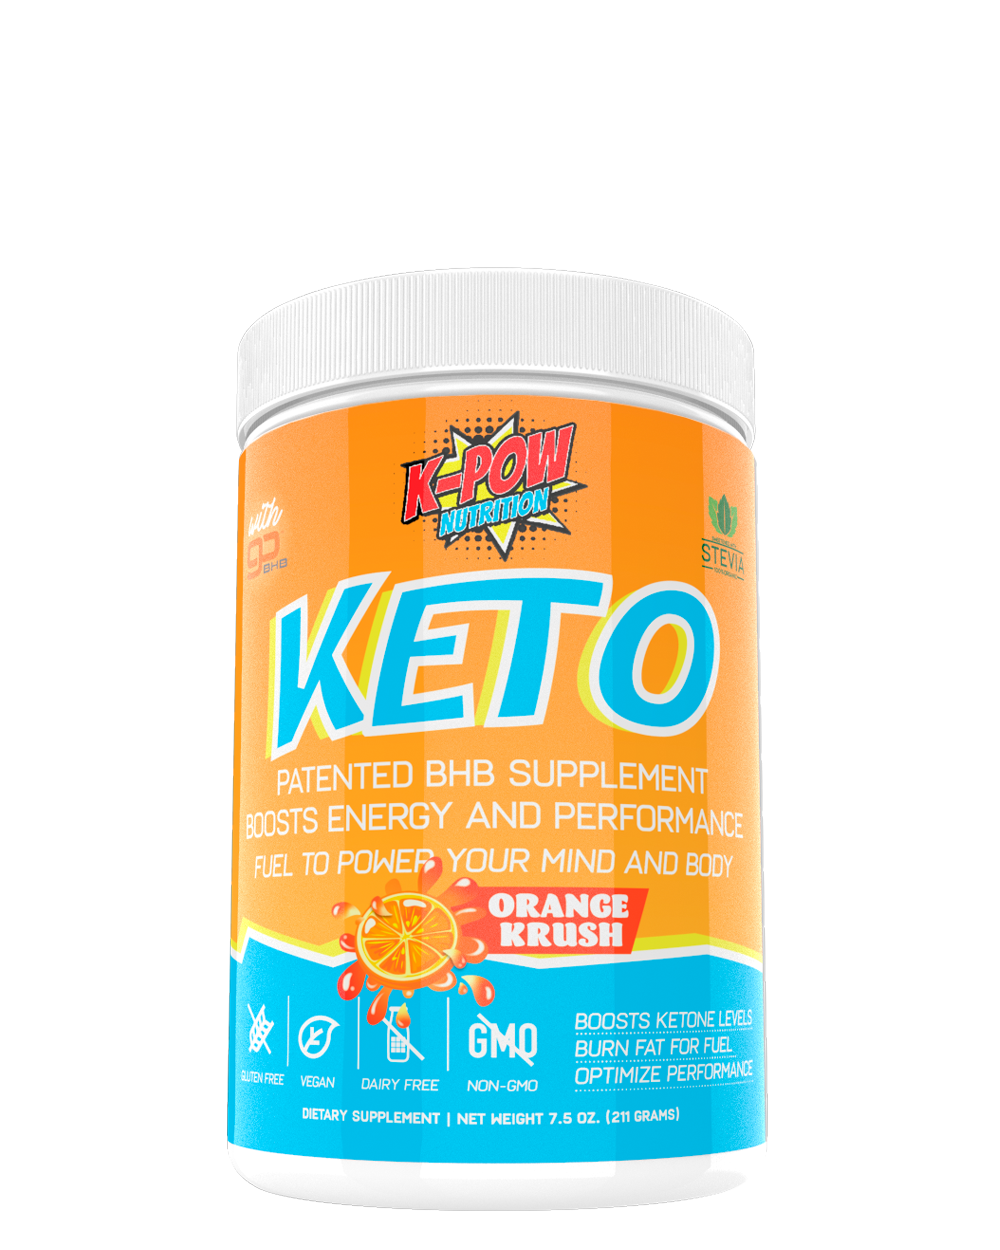 K-POW Keto - 30 Servings